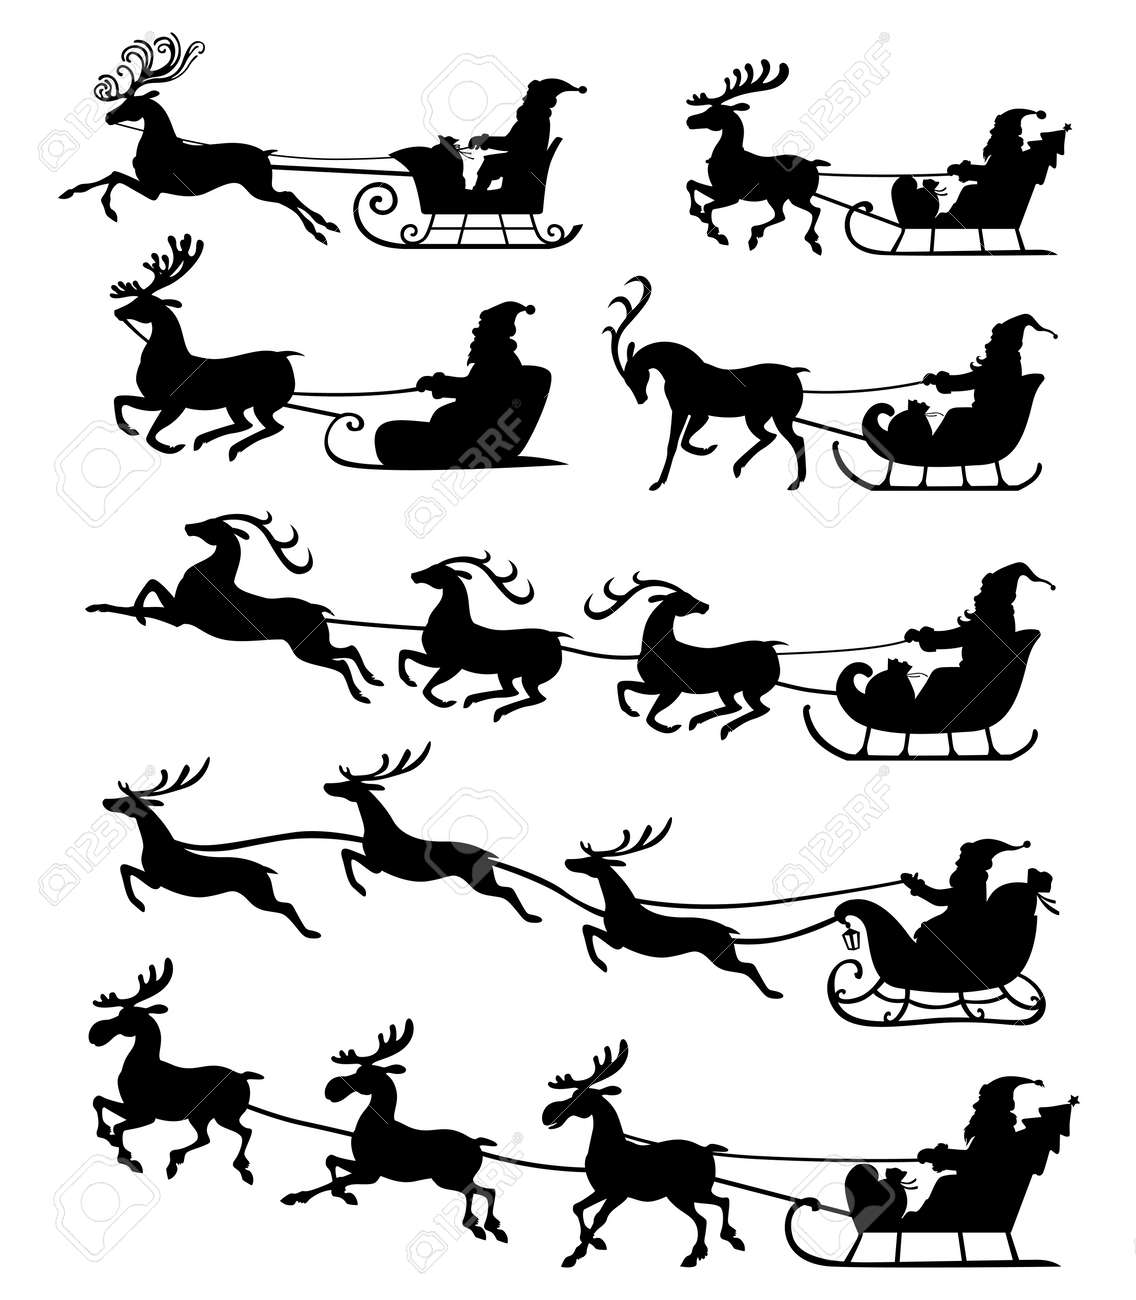 Christmas Silhouette.Vector Illustrations Of Christmas Silhouette Of Santa Claus Riding